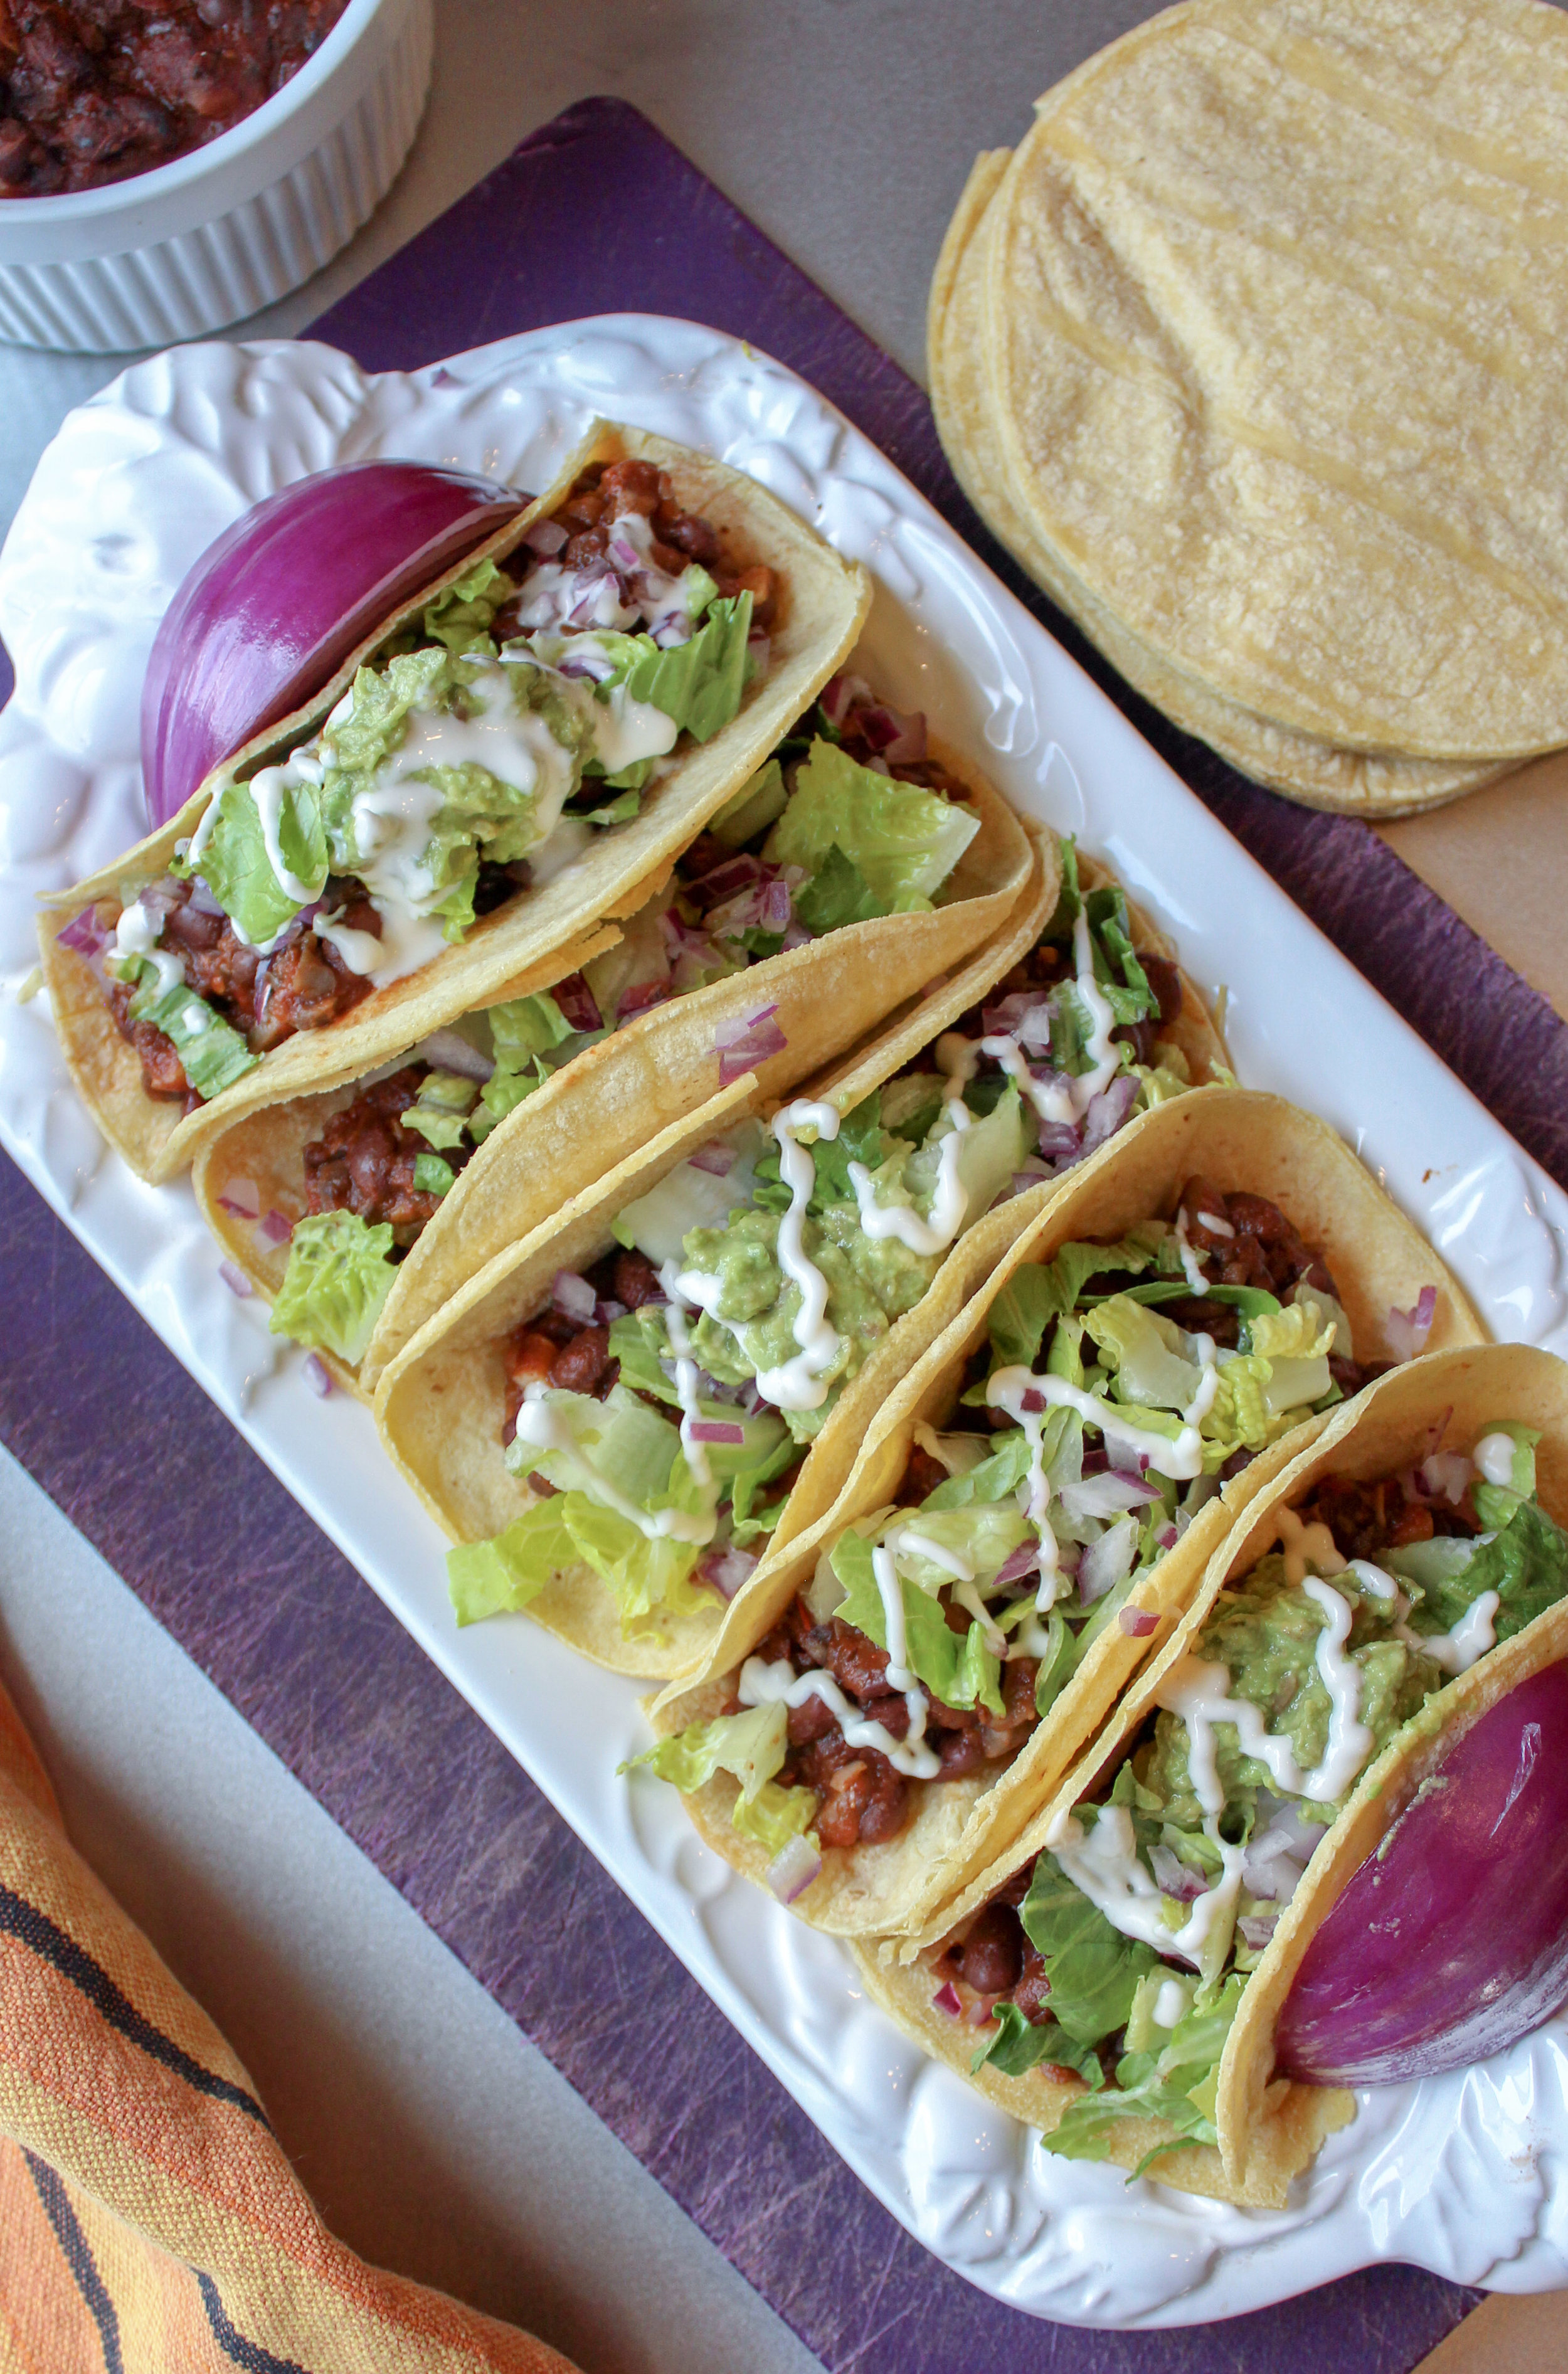 Meaty, chewy and delicious vegan mushroom and black bean tacos. Sure to satisfy even the pickiest carnivore. Gluten free, dairy free and meat free. Pressure cooker and stove top directions available. #vegan #taco #healthy #easy #pressurecooker #instantpot www.musicandmunchiesblog.com